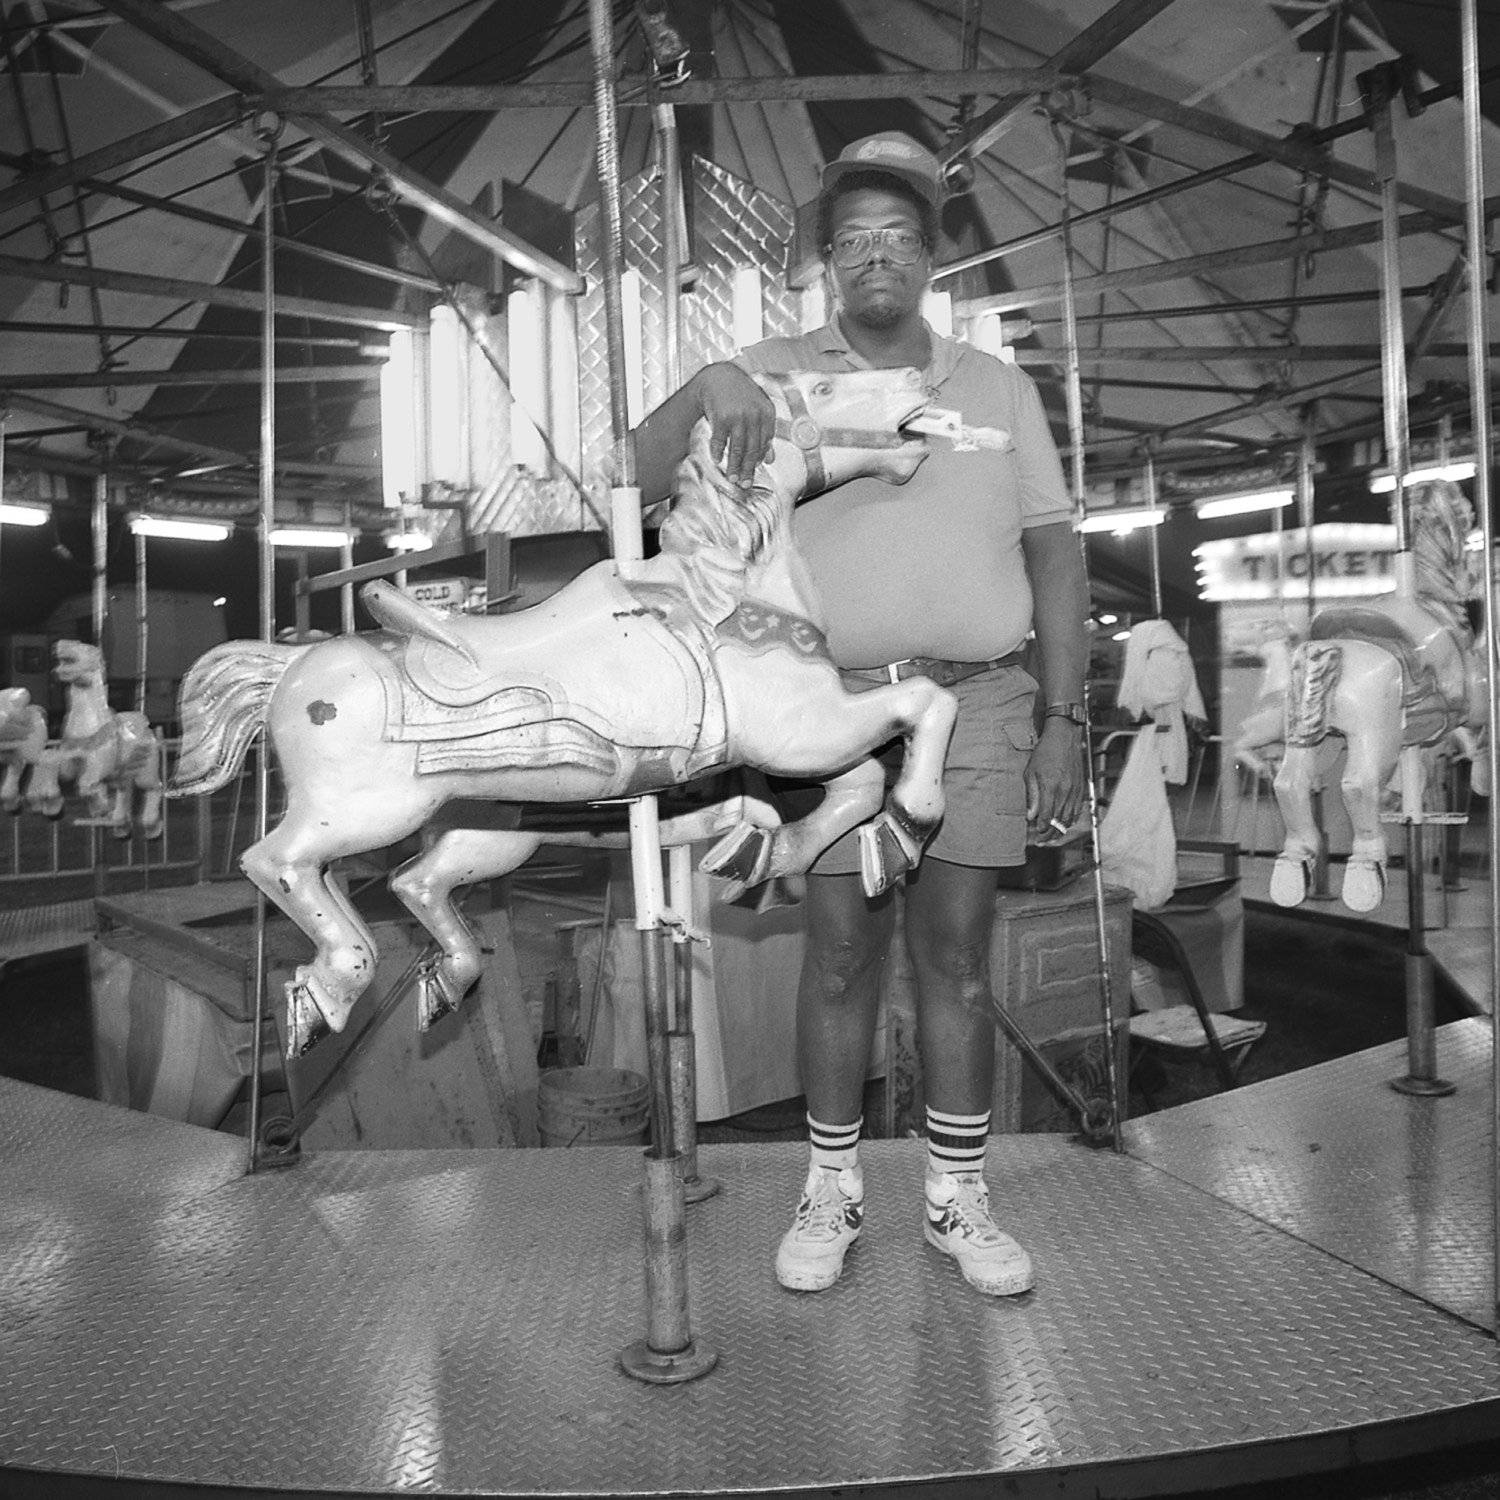 Man on Merry Go Round, Union City, Tennessee, archival pigment print,16x20, 1990